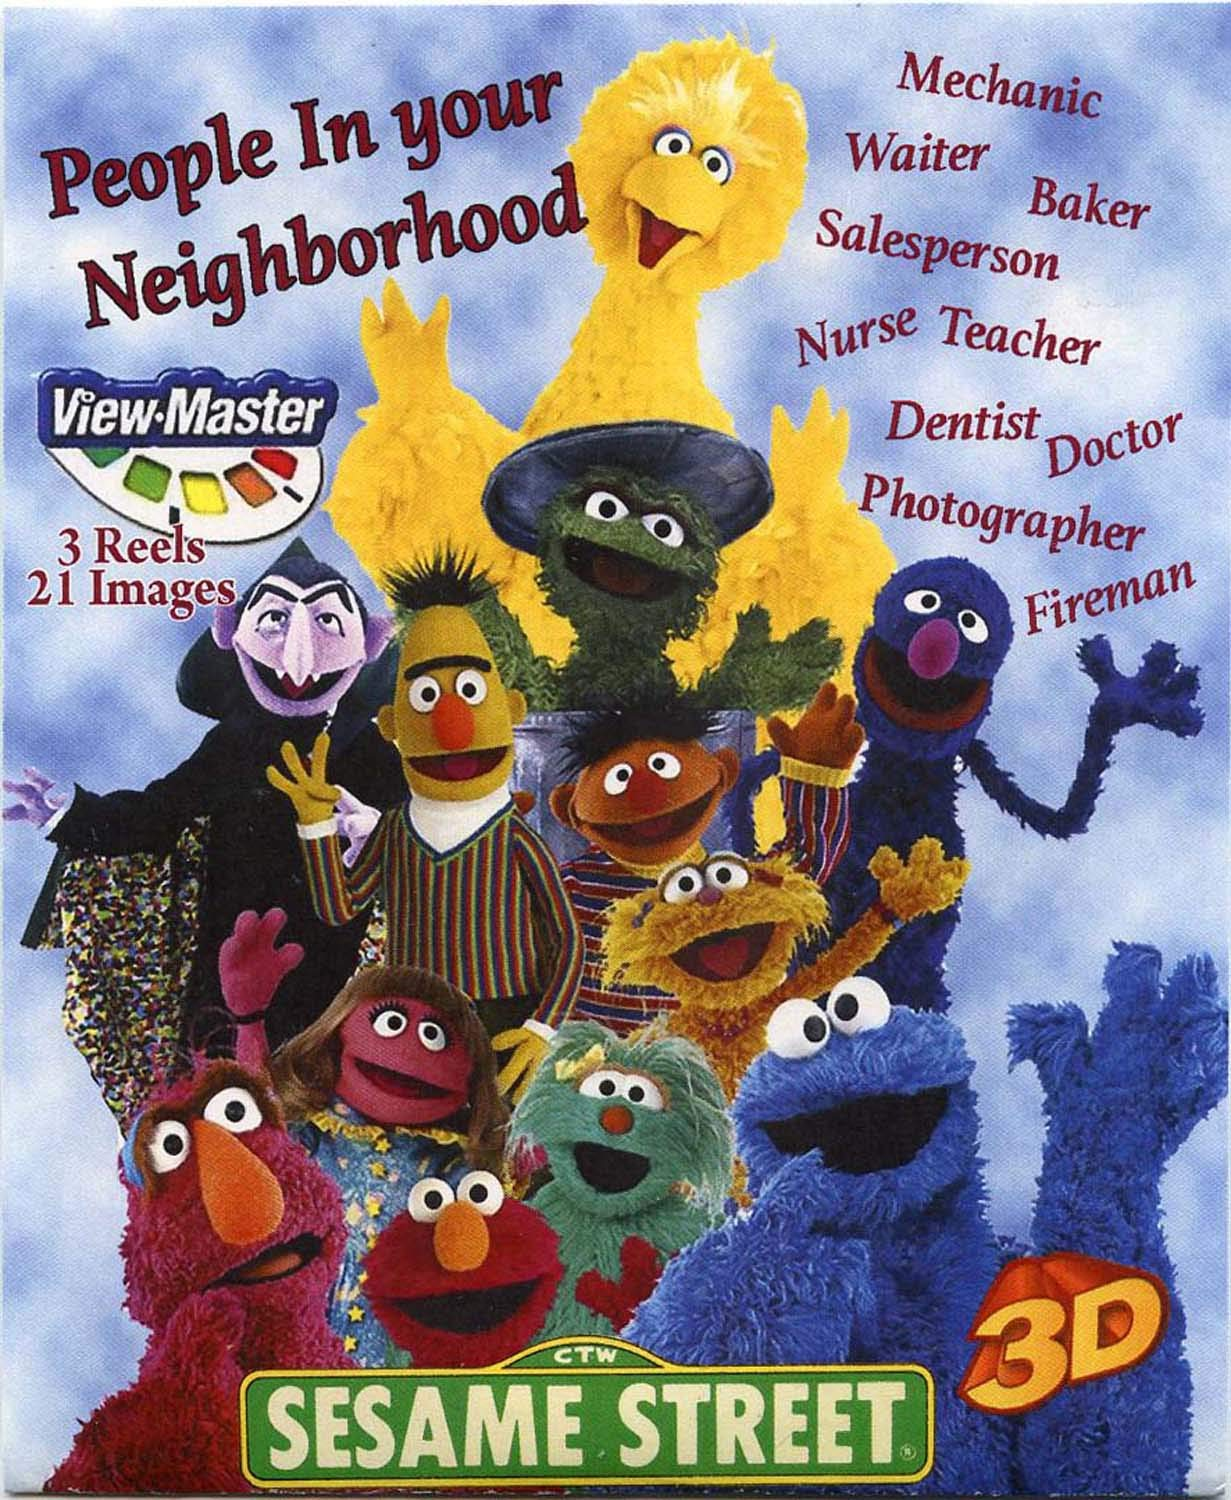 Sesame People in Your Neighborhood - Classic ViewMaster - 3 reels with 21 3D Images - Elmo, Big Bird, Cookie Moster